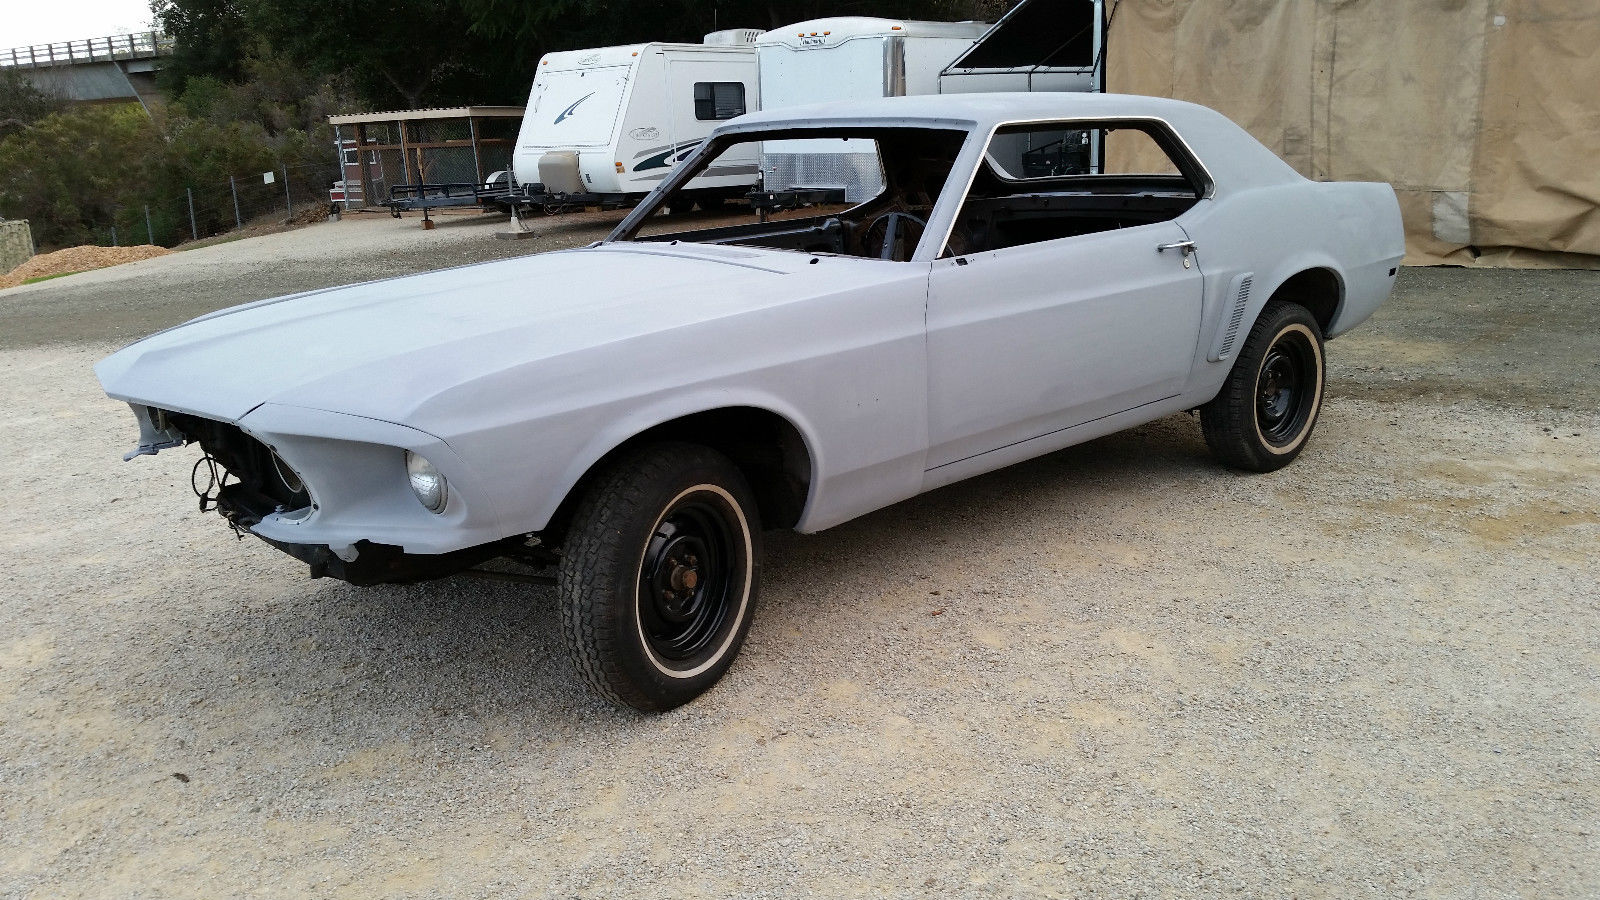 1969 classic ford mustang v8 coupe project car clean california car and title